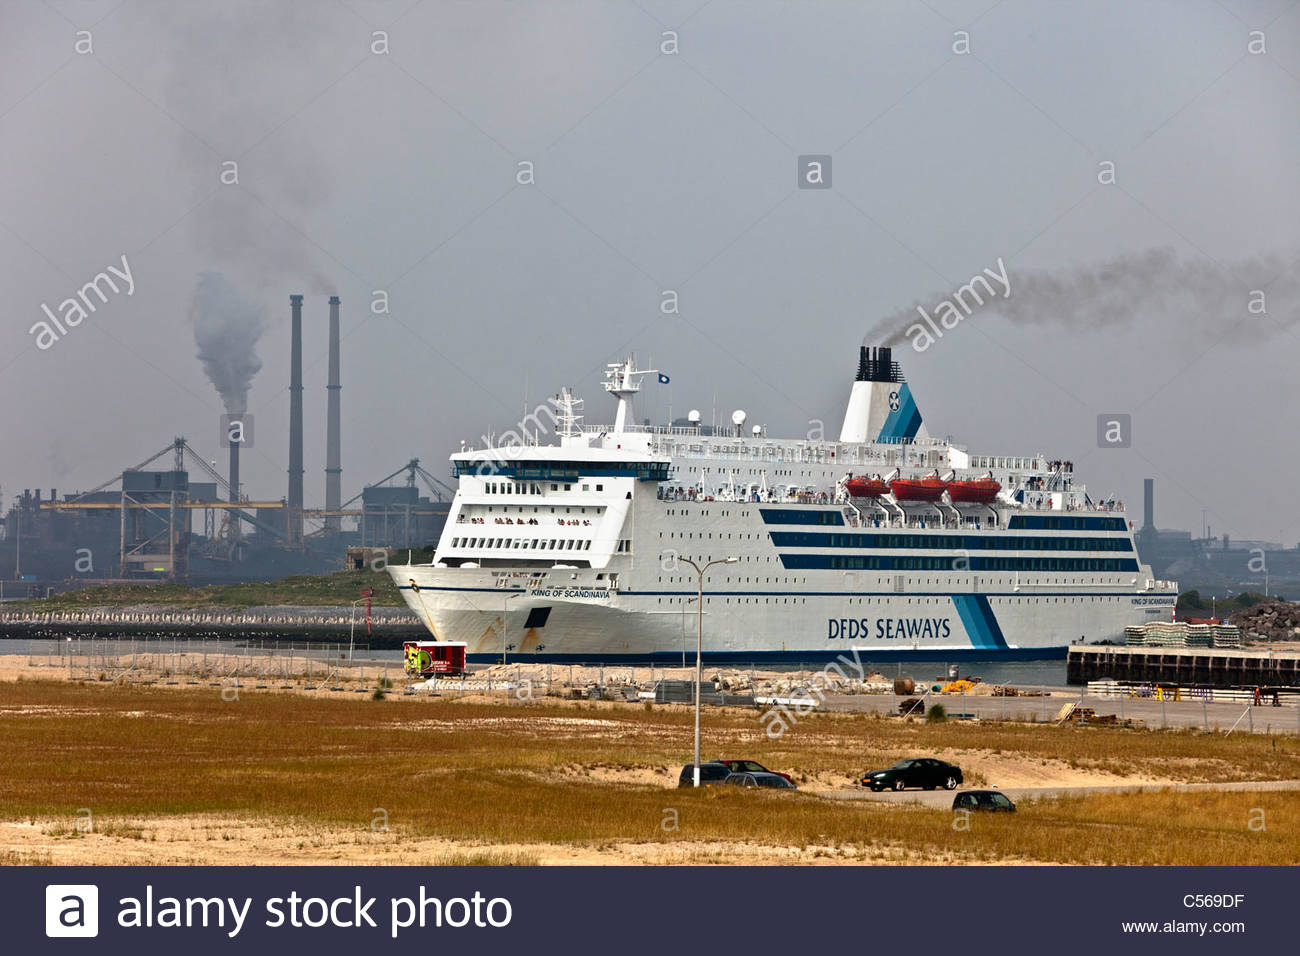 The Netherlands, IJmuiden, DFDS ferry to Newcastle leaving for the Norh Sea. Background Tata Steel blast furnaces. - Stock Image